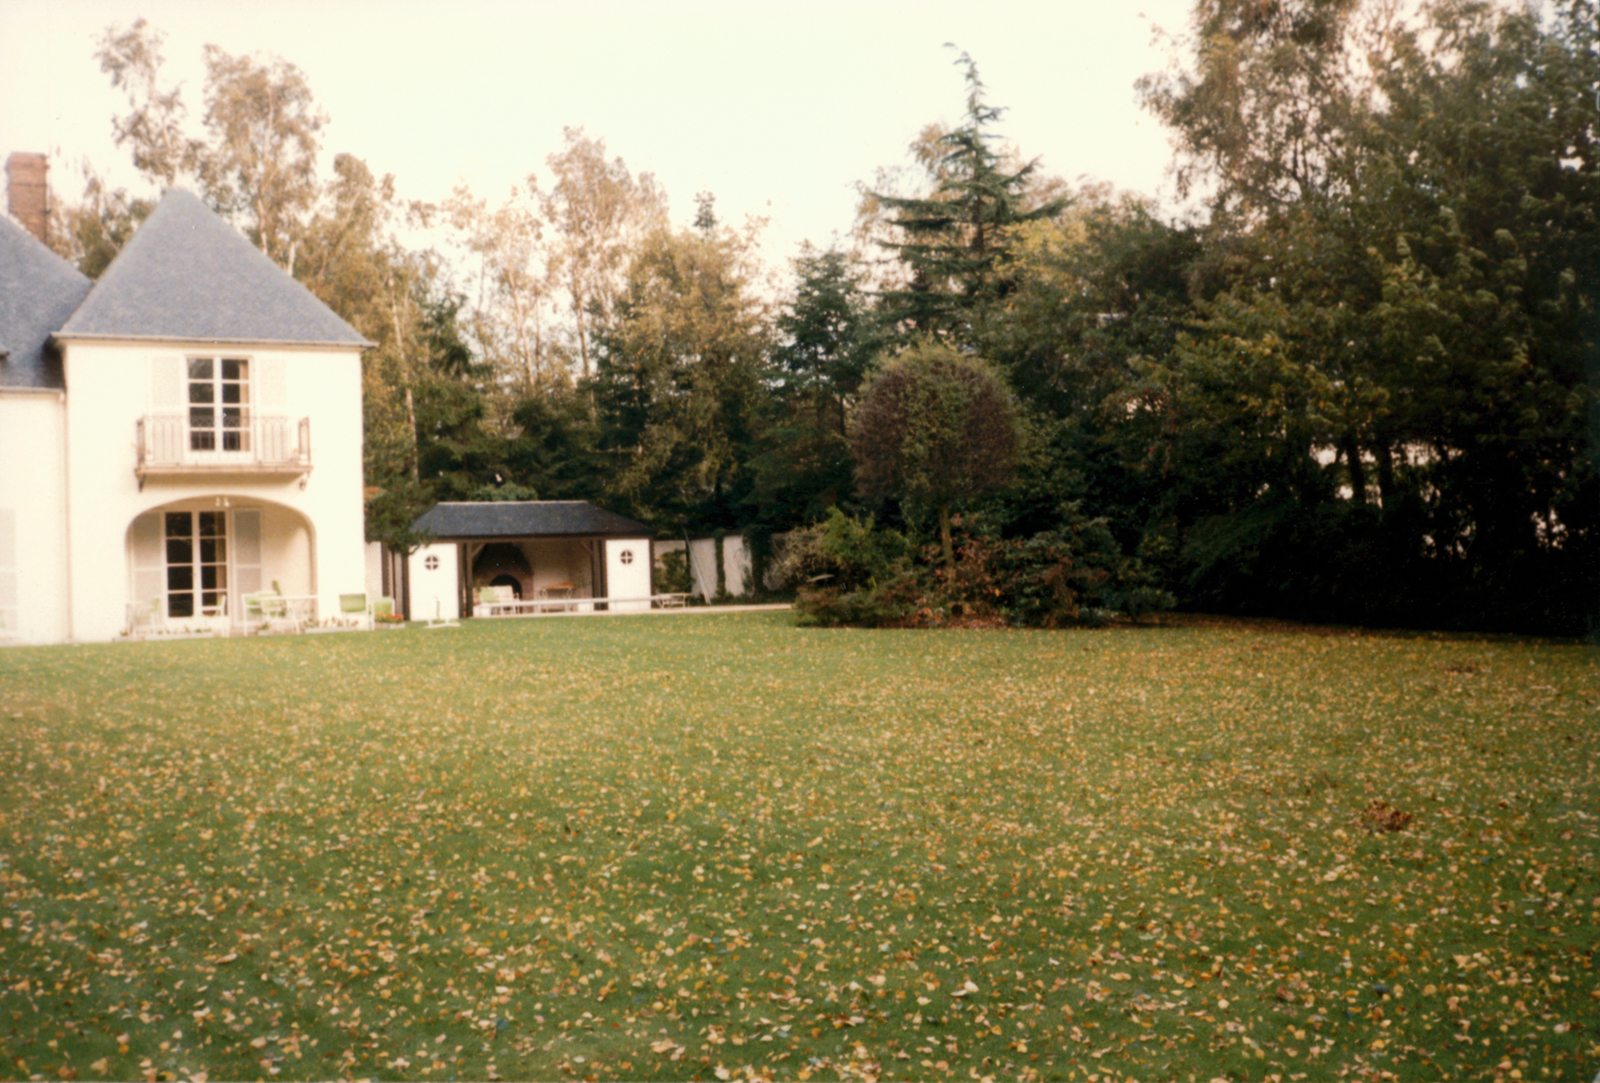 Brussels USEC - Deputy Chief of Mission Residence - 1986